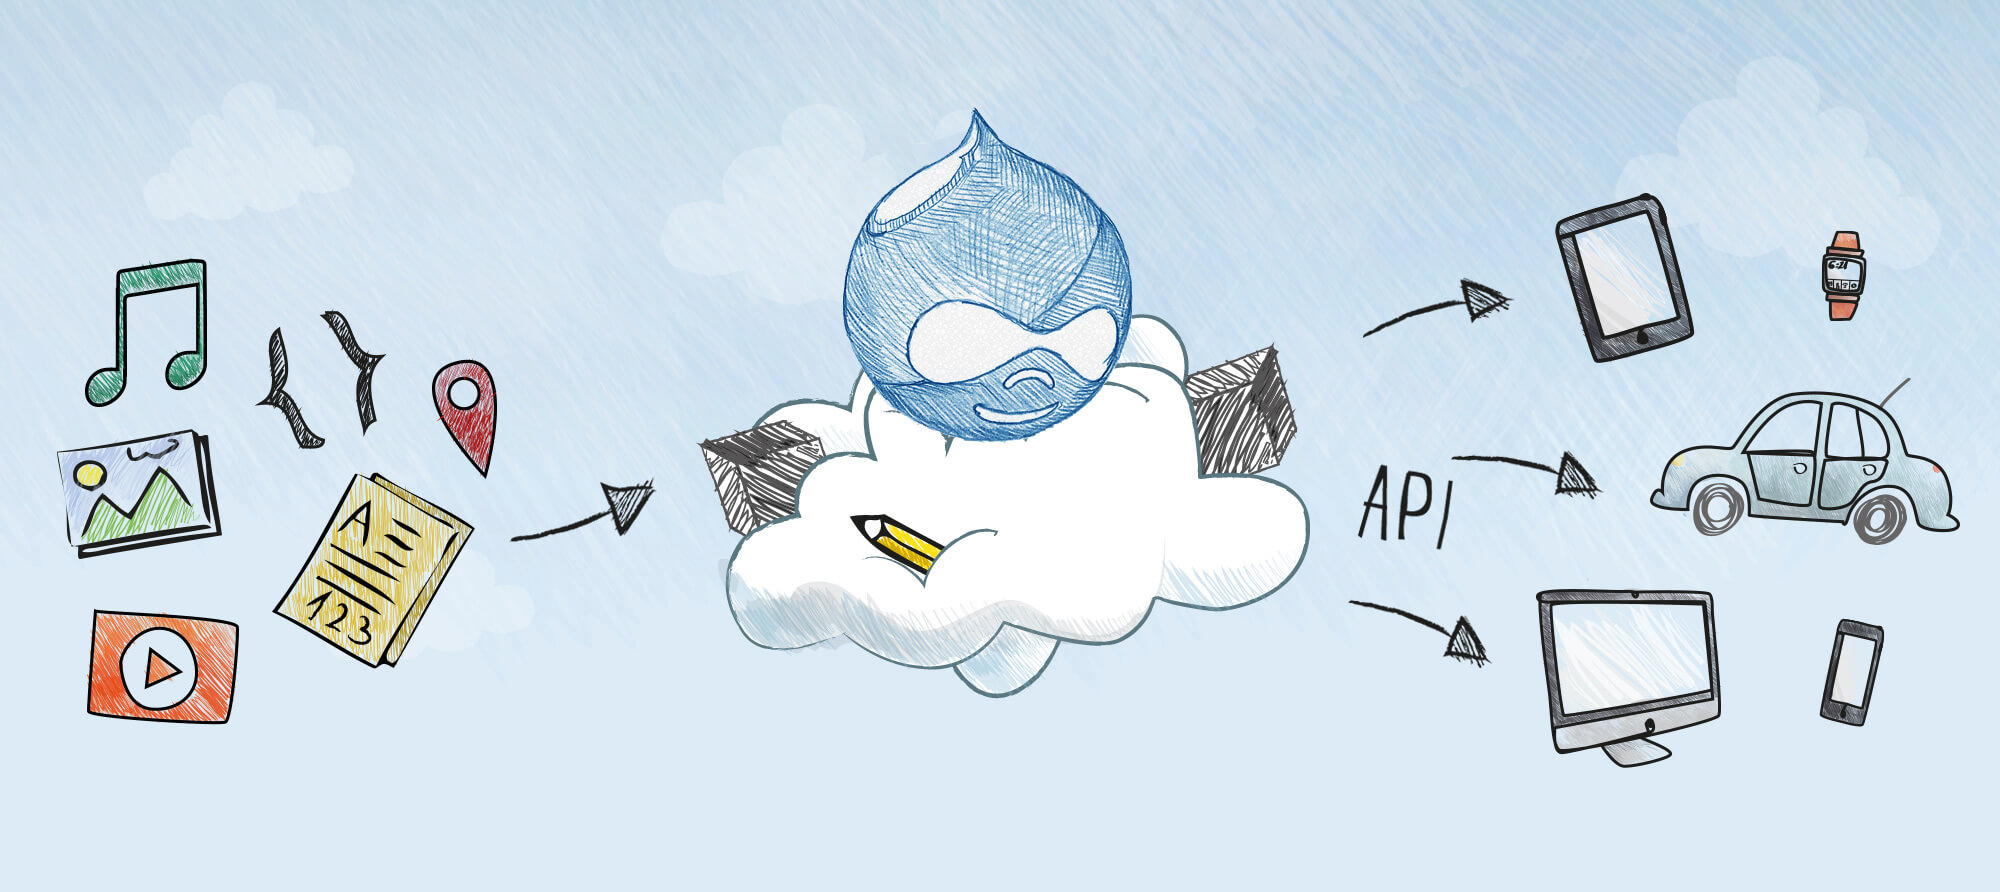 blue drupal logo placed on a cloud with a pencil where the left side has all the types of content images and the right side has the images of a various device